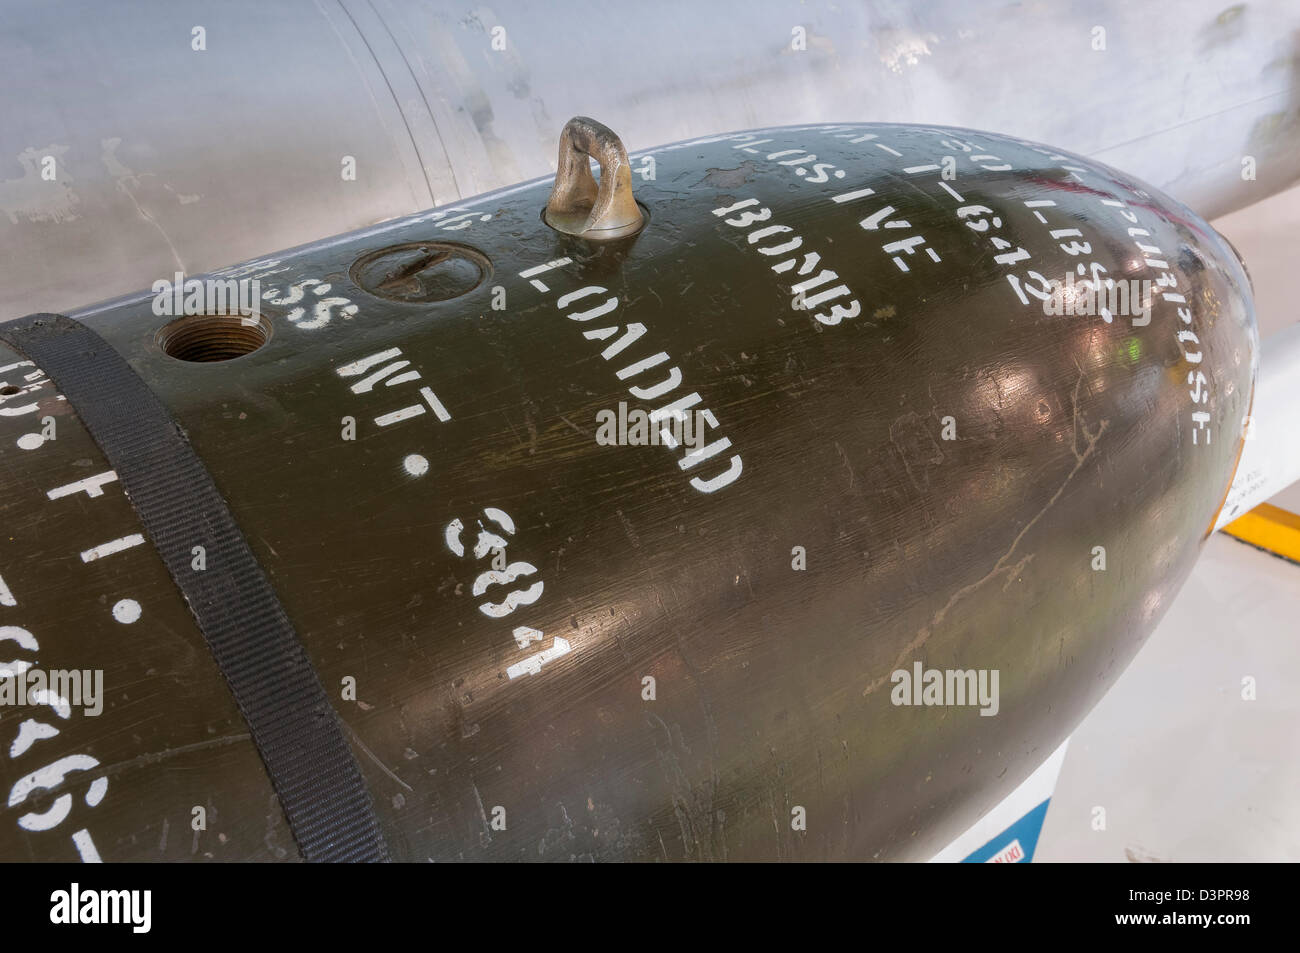 M117 750 lb conventional bomb, Wings over the Rockies Air and Space Museum, Denver, Colorado. - Stock Image